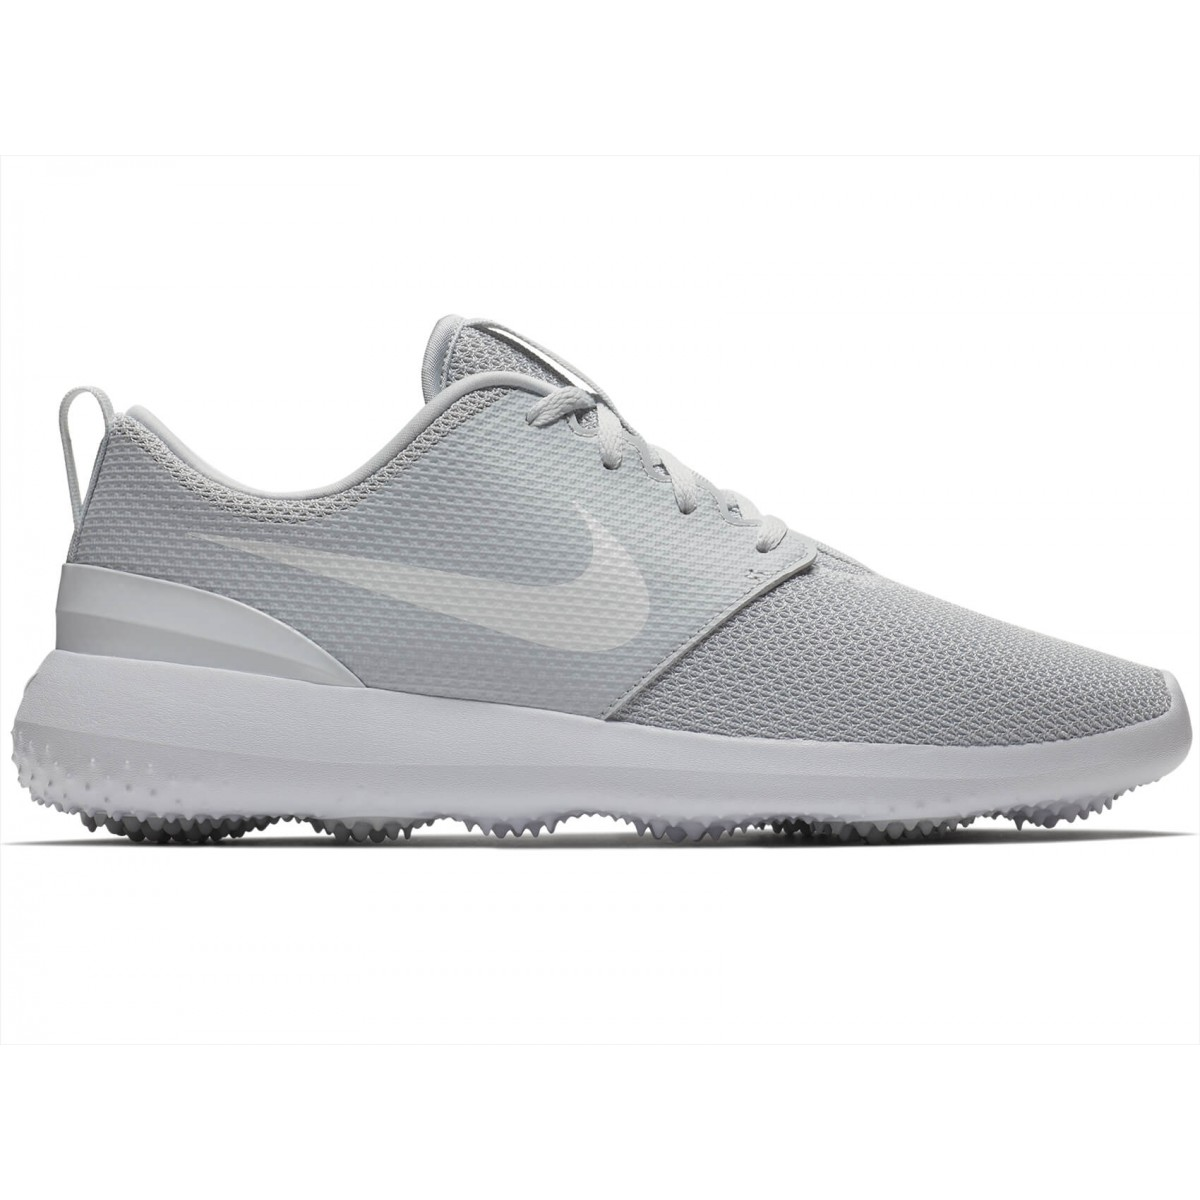 Nike Roshe-G Golf Shoe - Grey